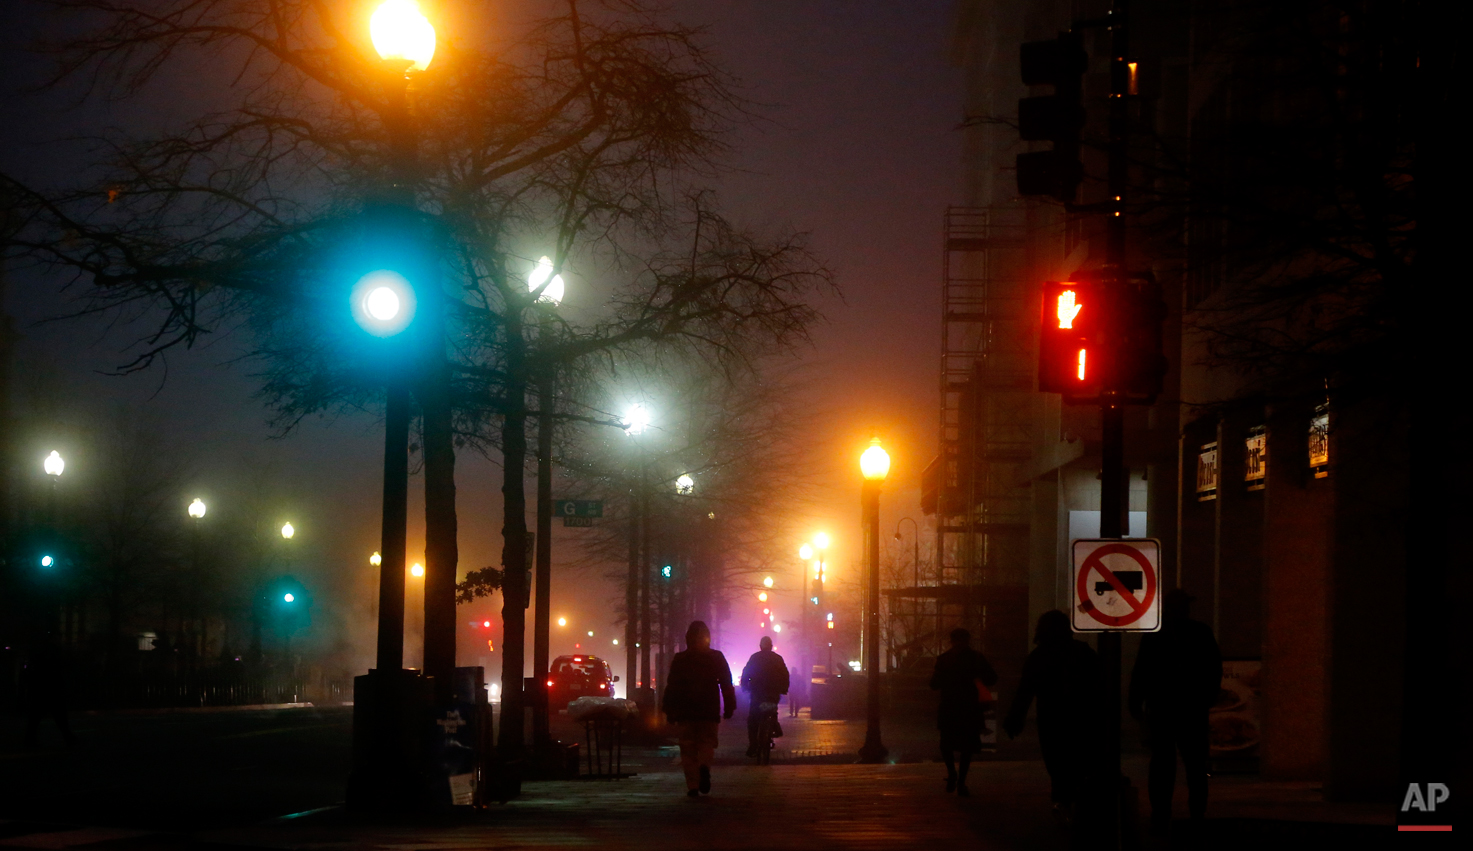 Pedestrians walk in a morning fog on 17th Street and Pennsylvania Avenue NW across from the Eisenhower Executive Office Building in Washington, Wednesday, Jan. 15, 2014. A dense fog has caused limited visibility in the Washington area. (AP Photo/Charles Dharapak)